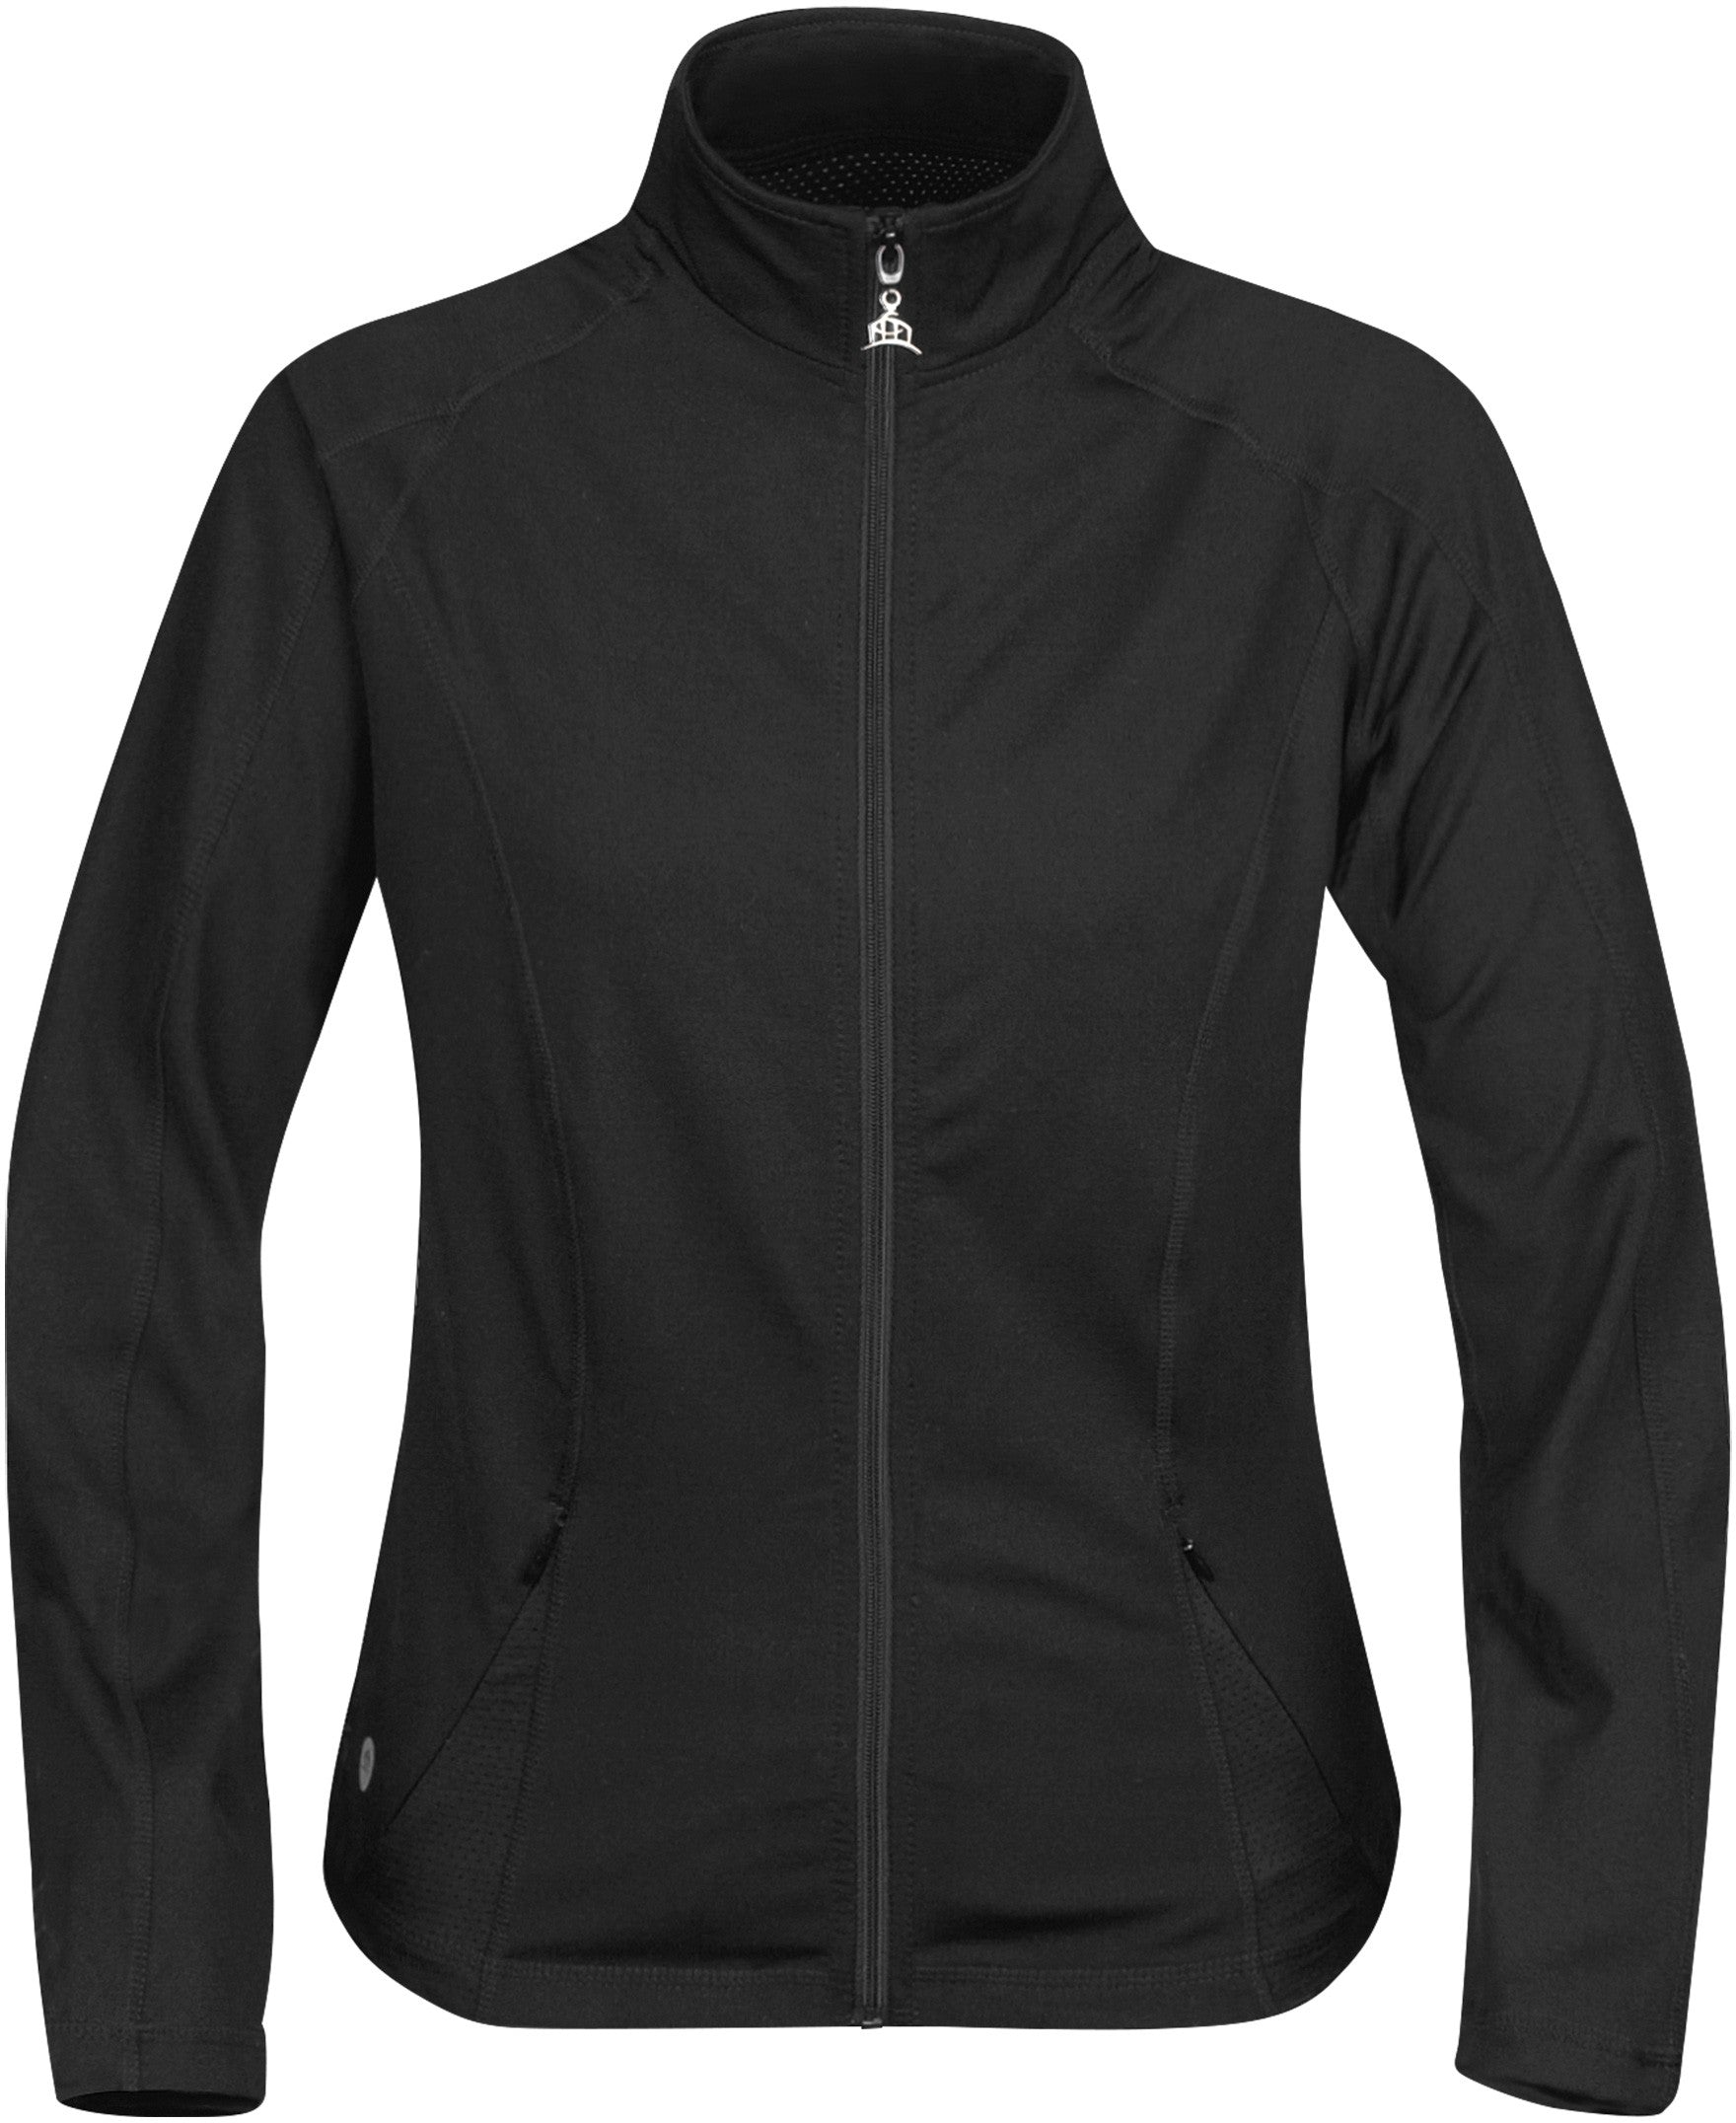 Flex Textured Yoga Jacket - Inventory